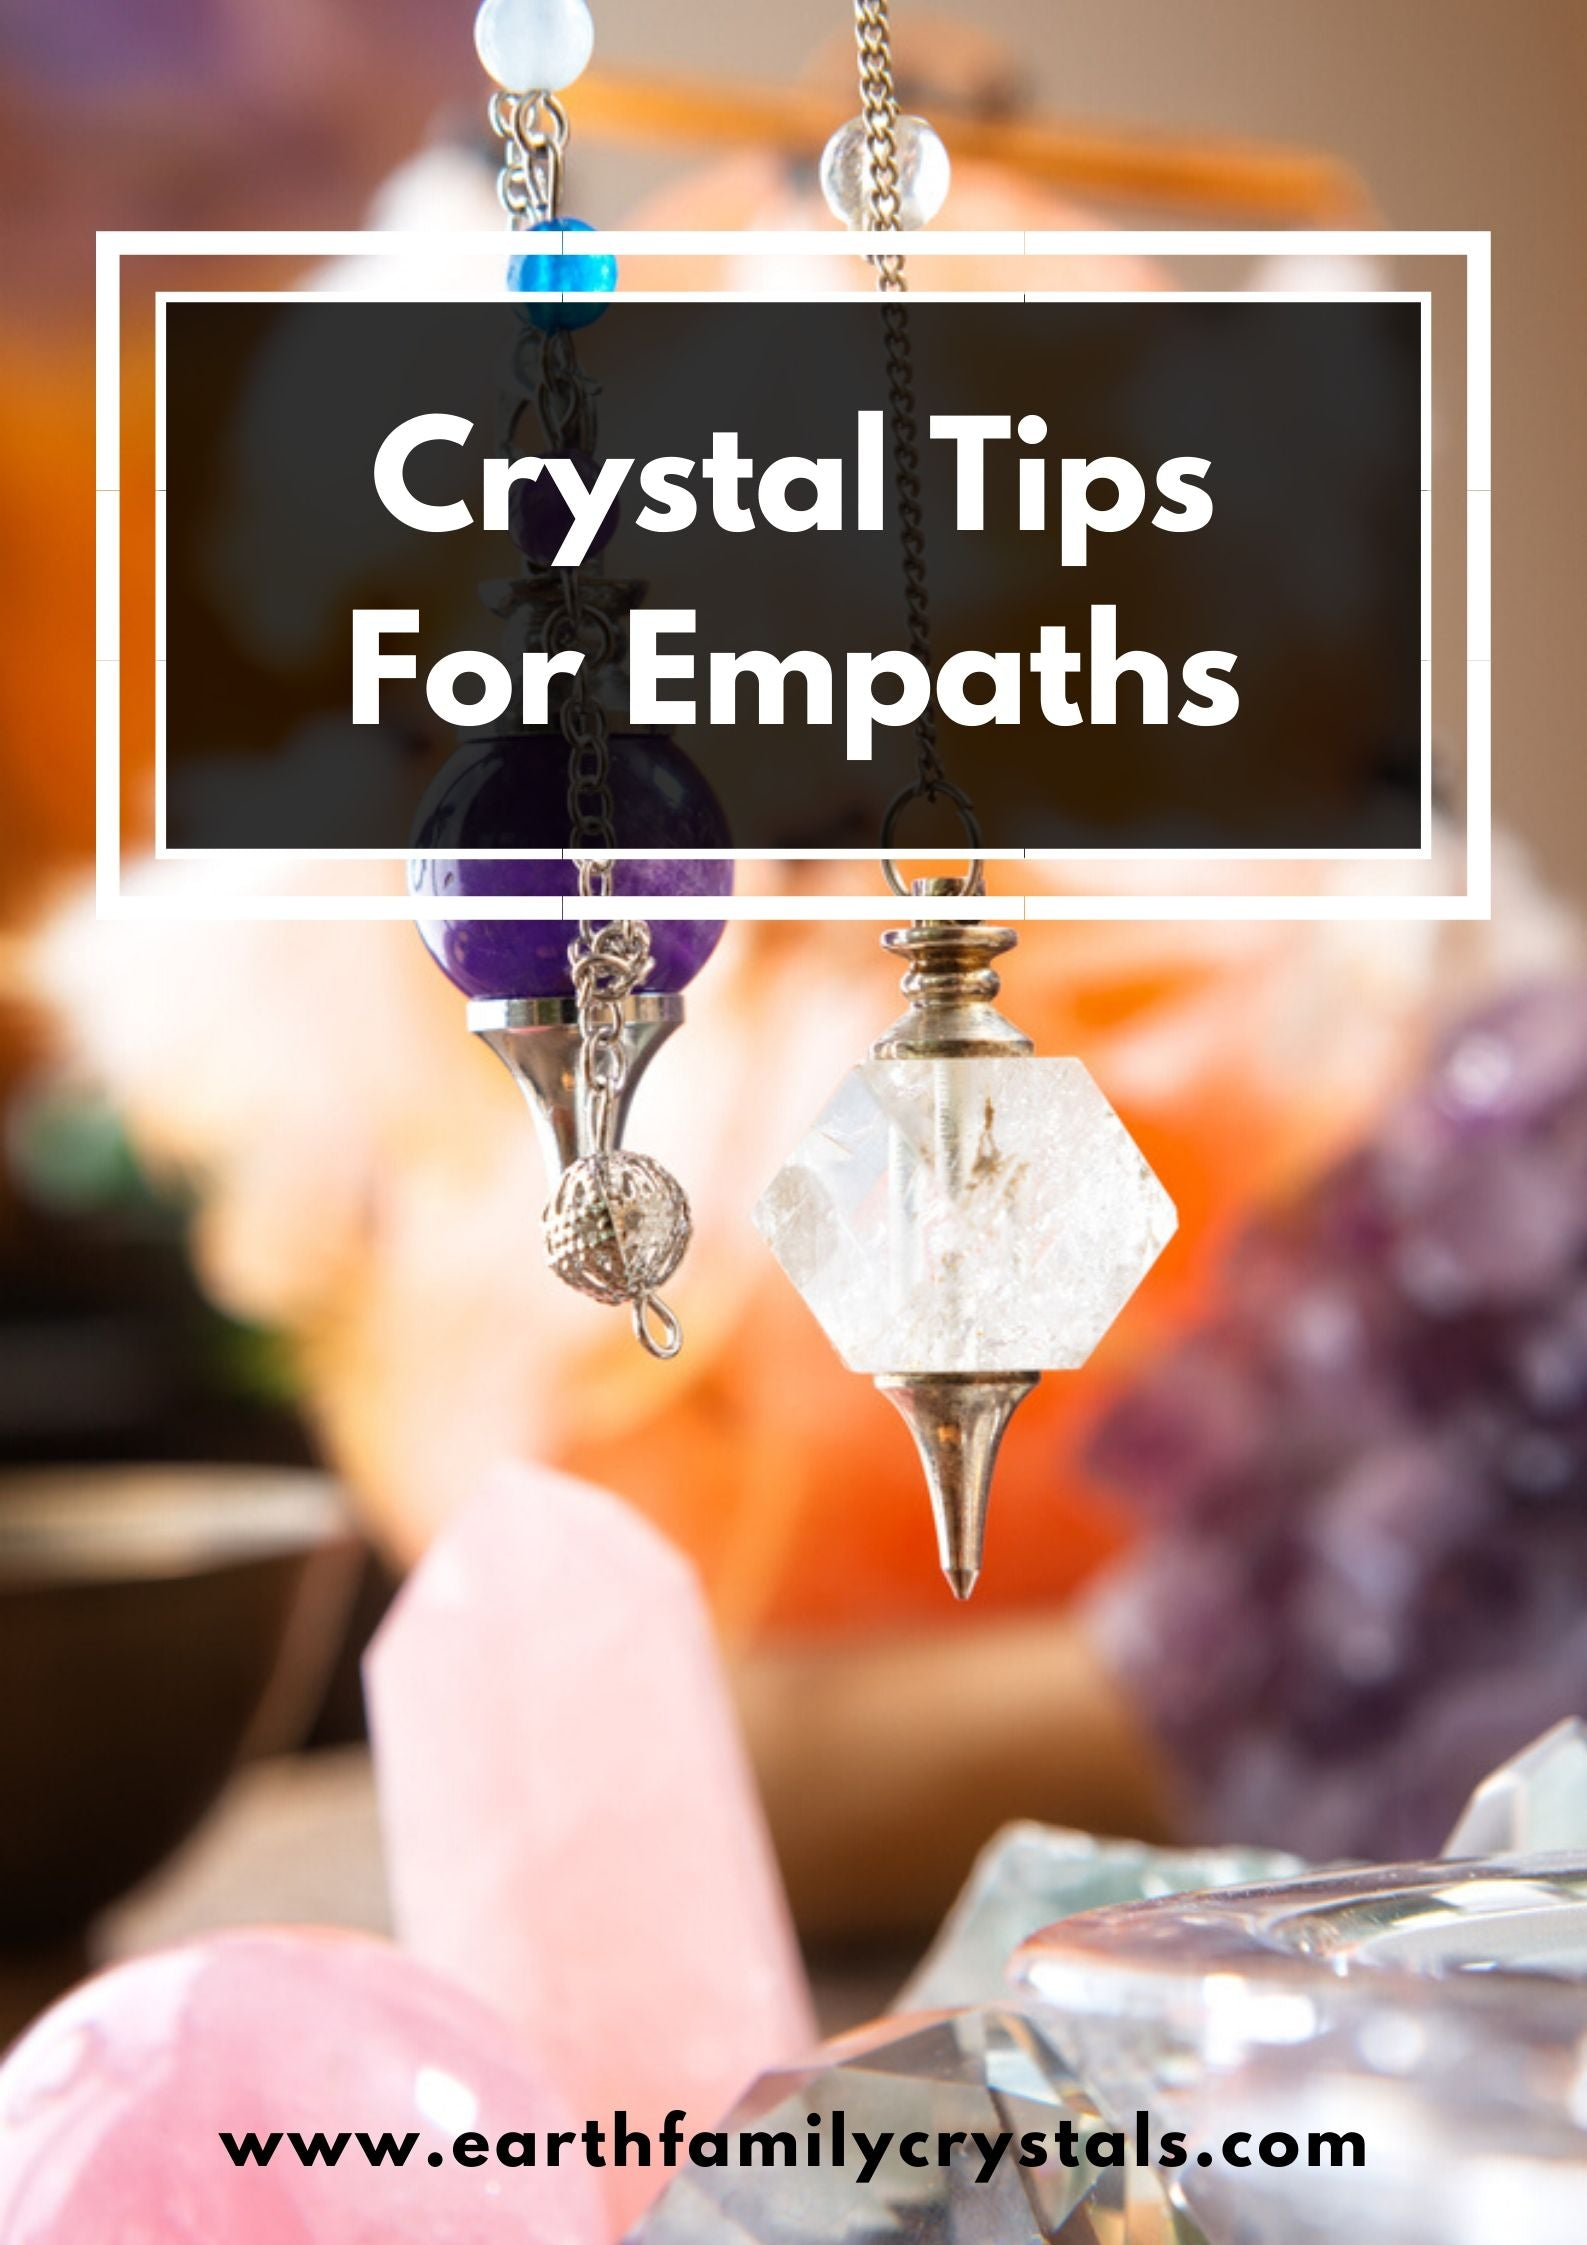 Crystal Tips for Empaths